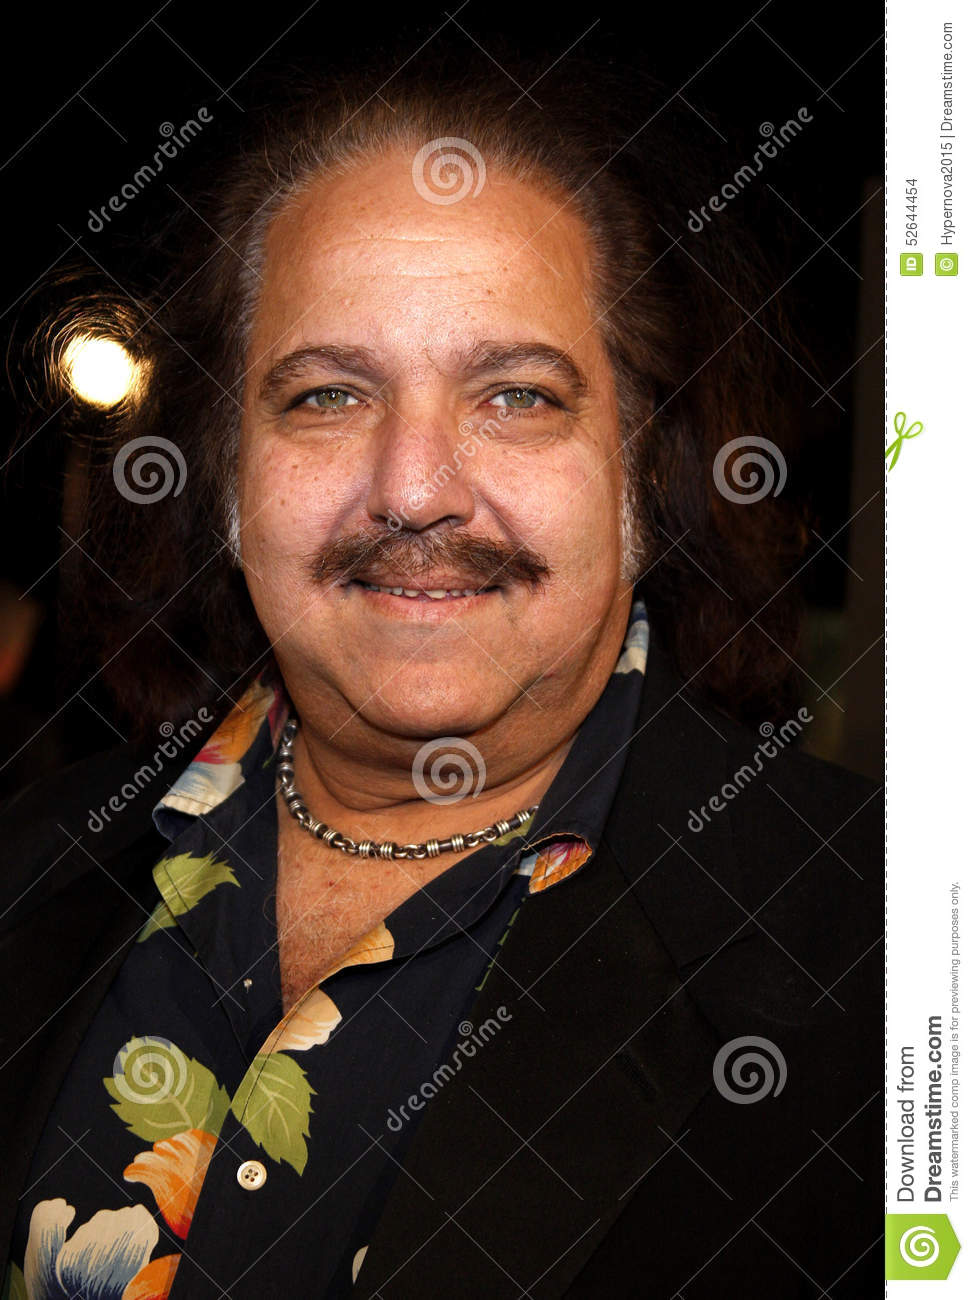 Ron jeremy thumbs